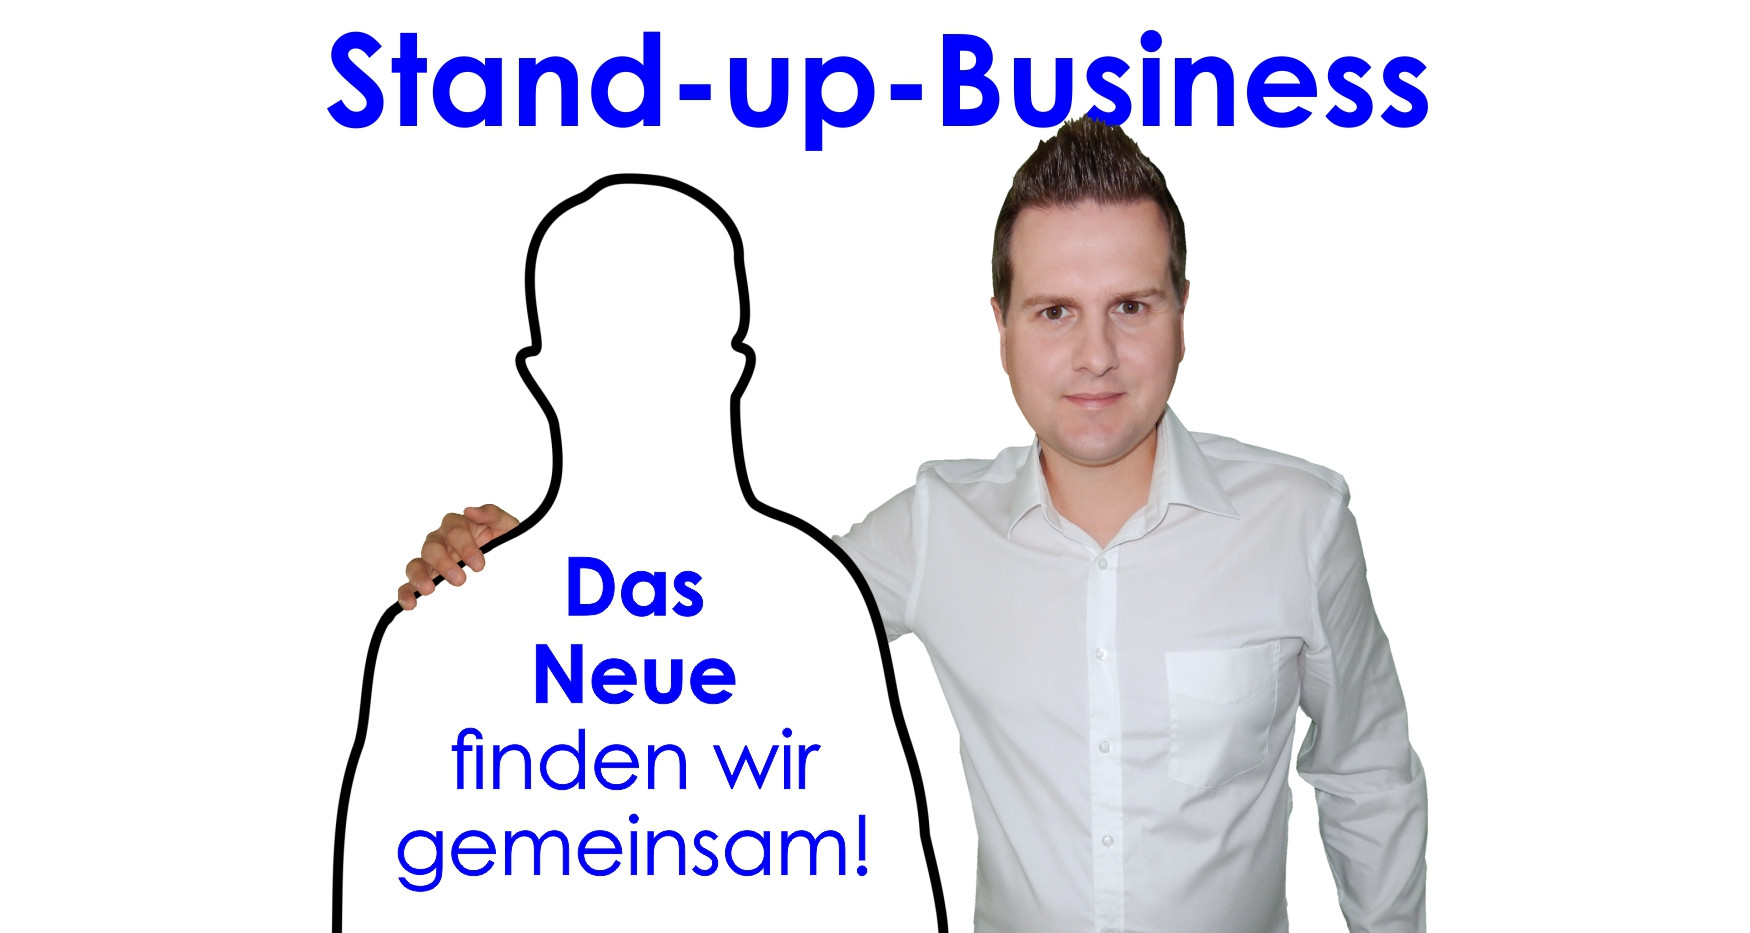 Stand-up-Business